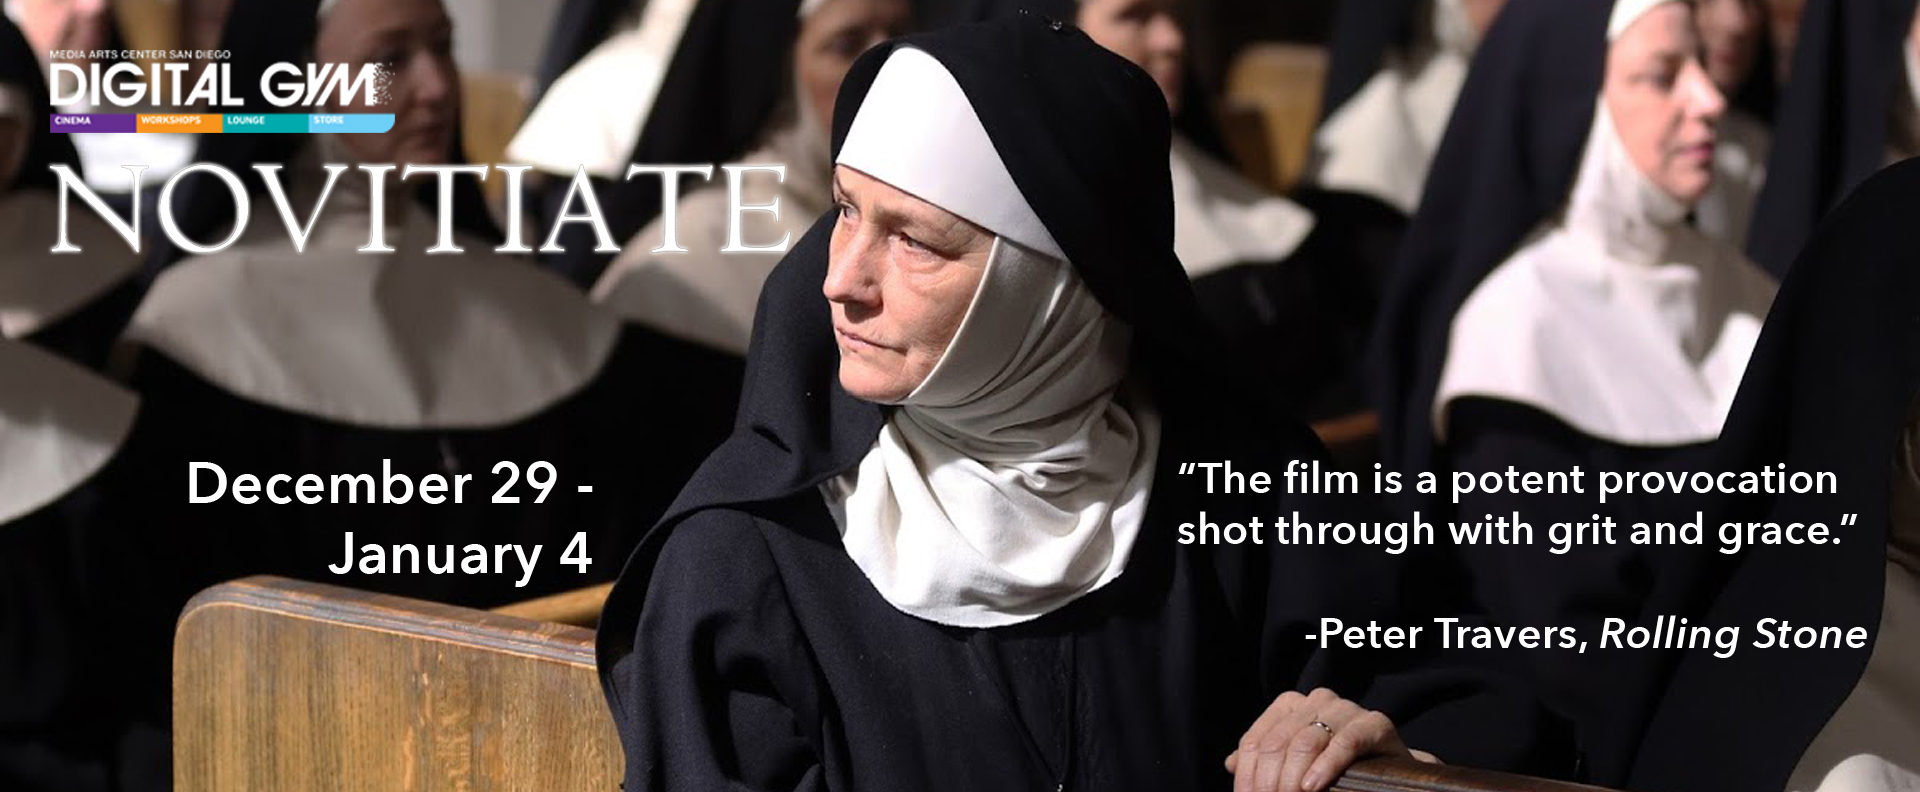 FOR YOUR CONSIDERATION: Novitiate (December 29 – January 4)